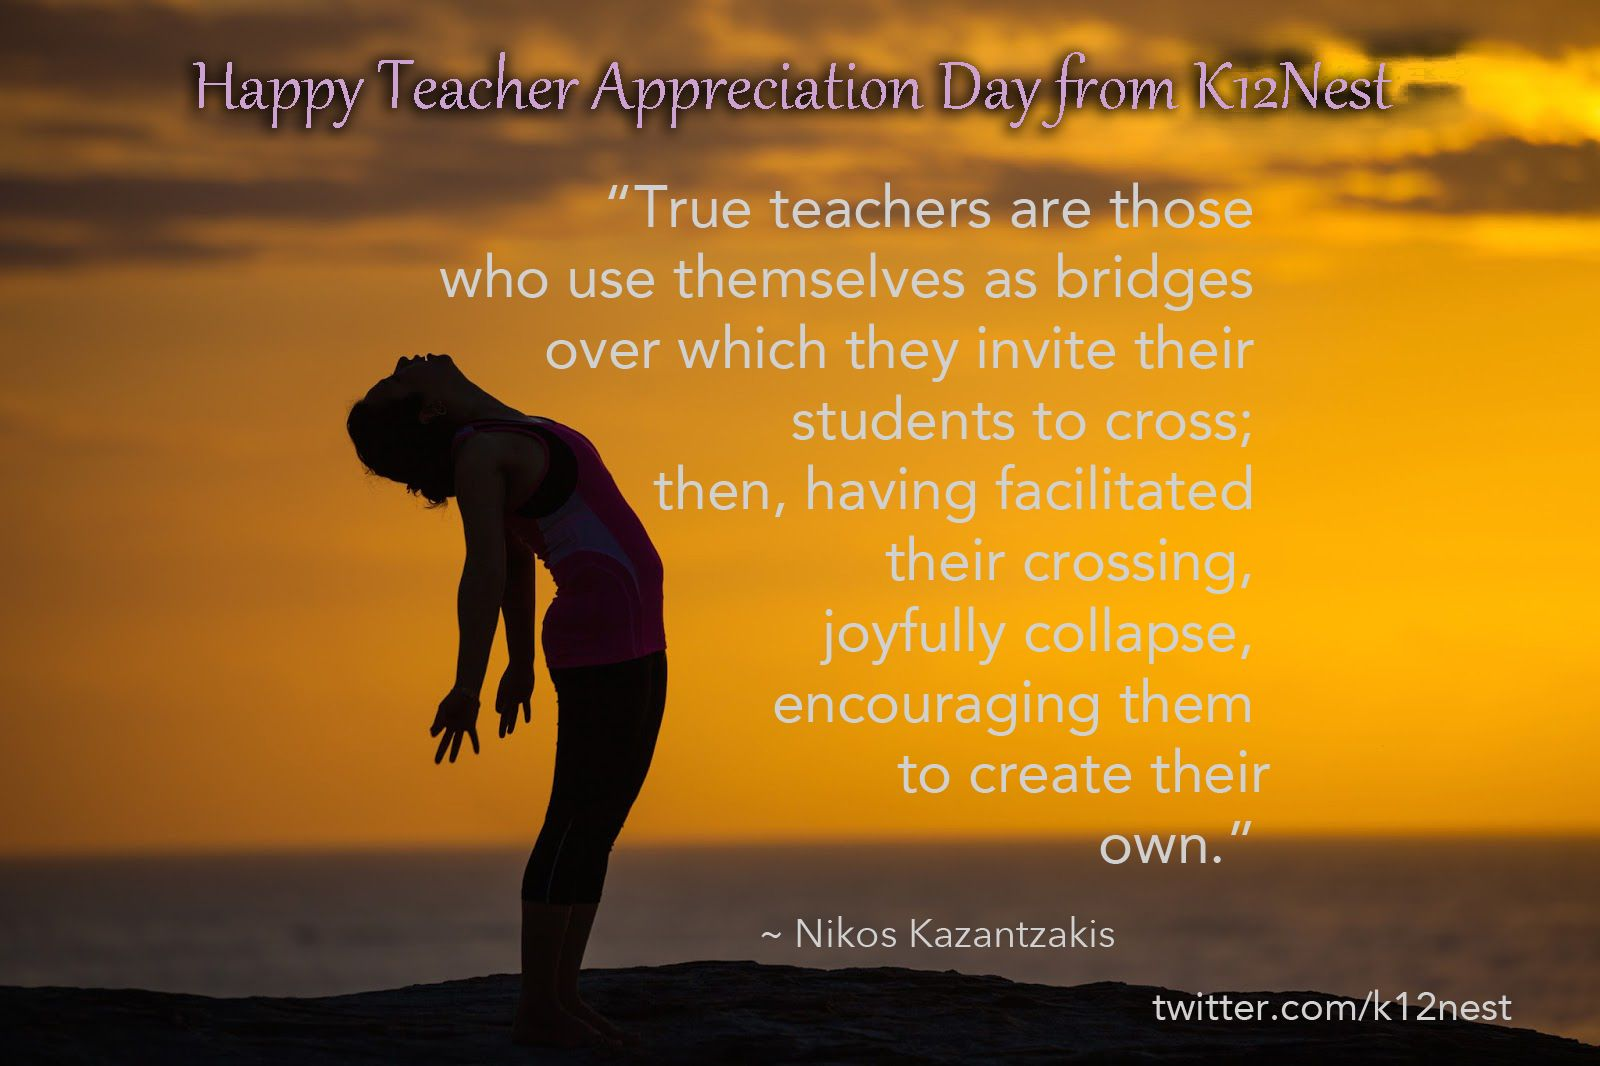 All Of Us At K12nest Would Like To Wish All Teachers Happy